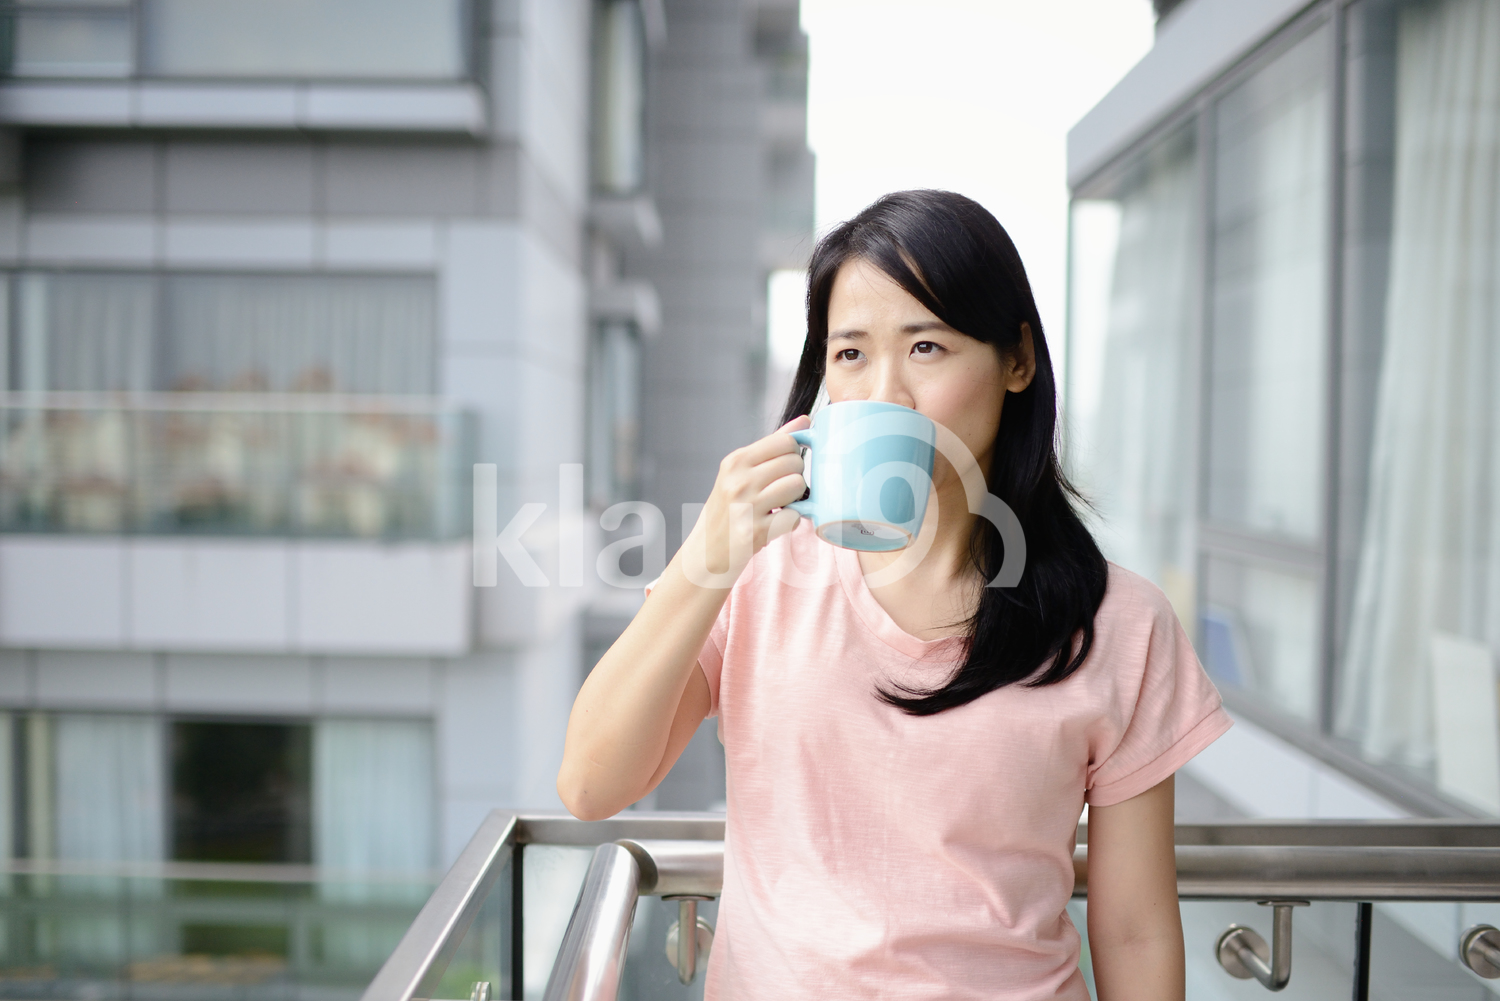 Young woman drinking coffee on a condo balcony